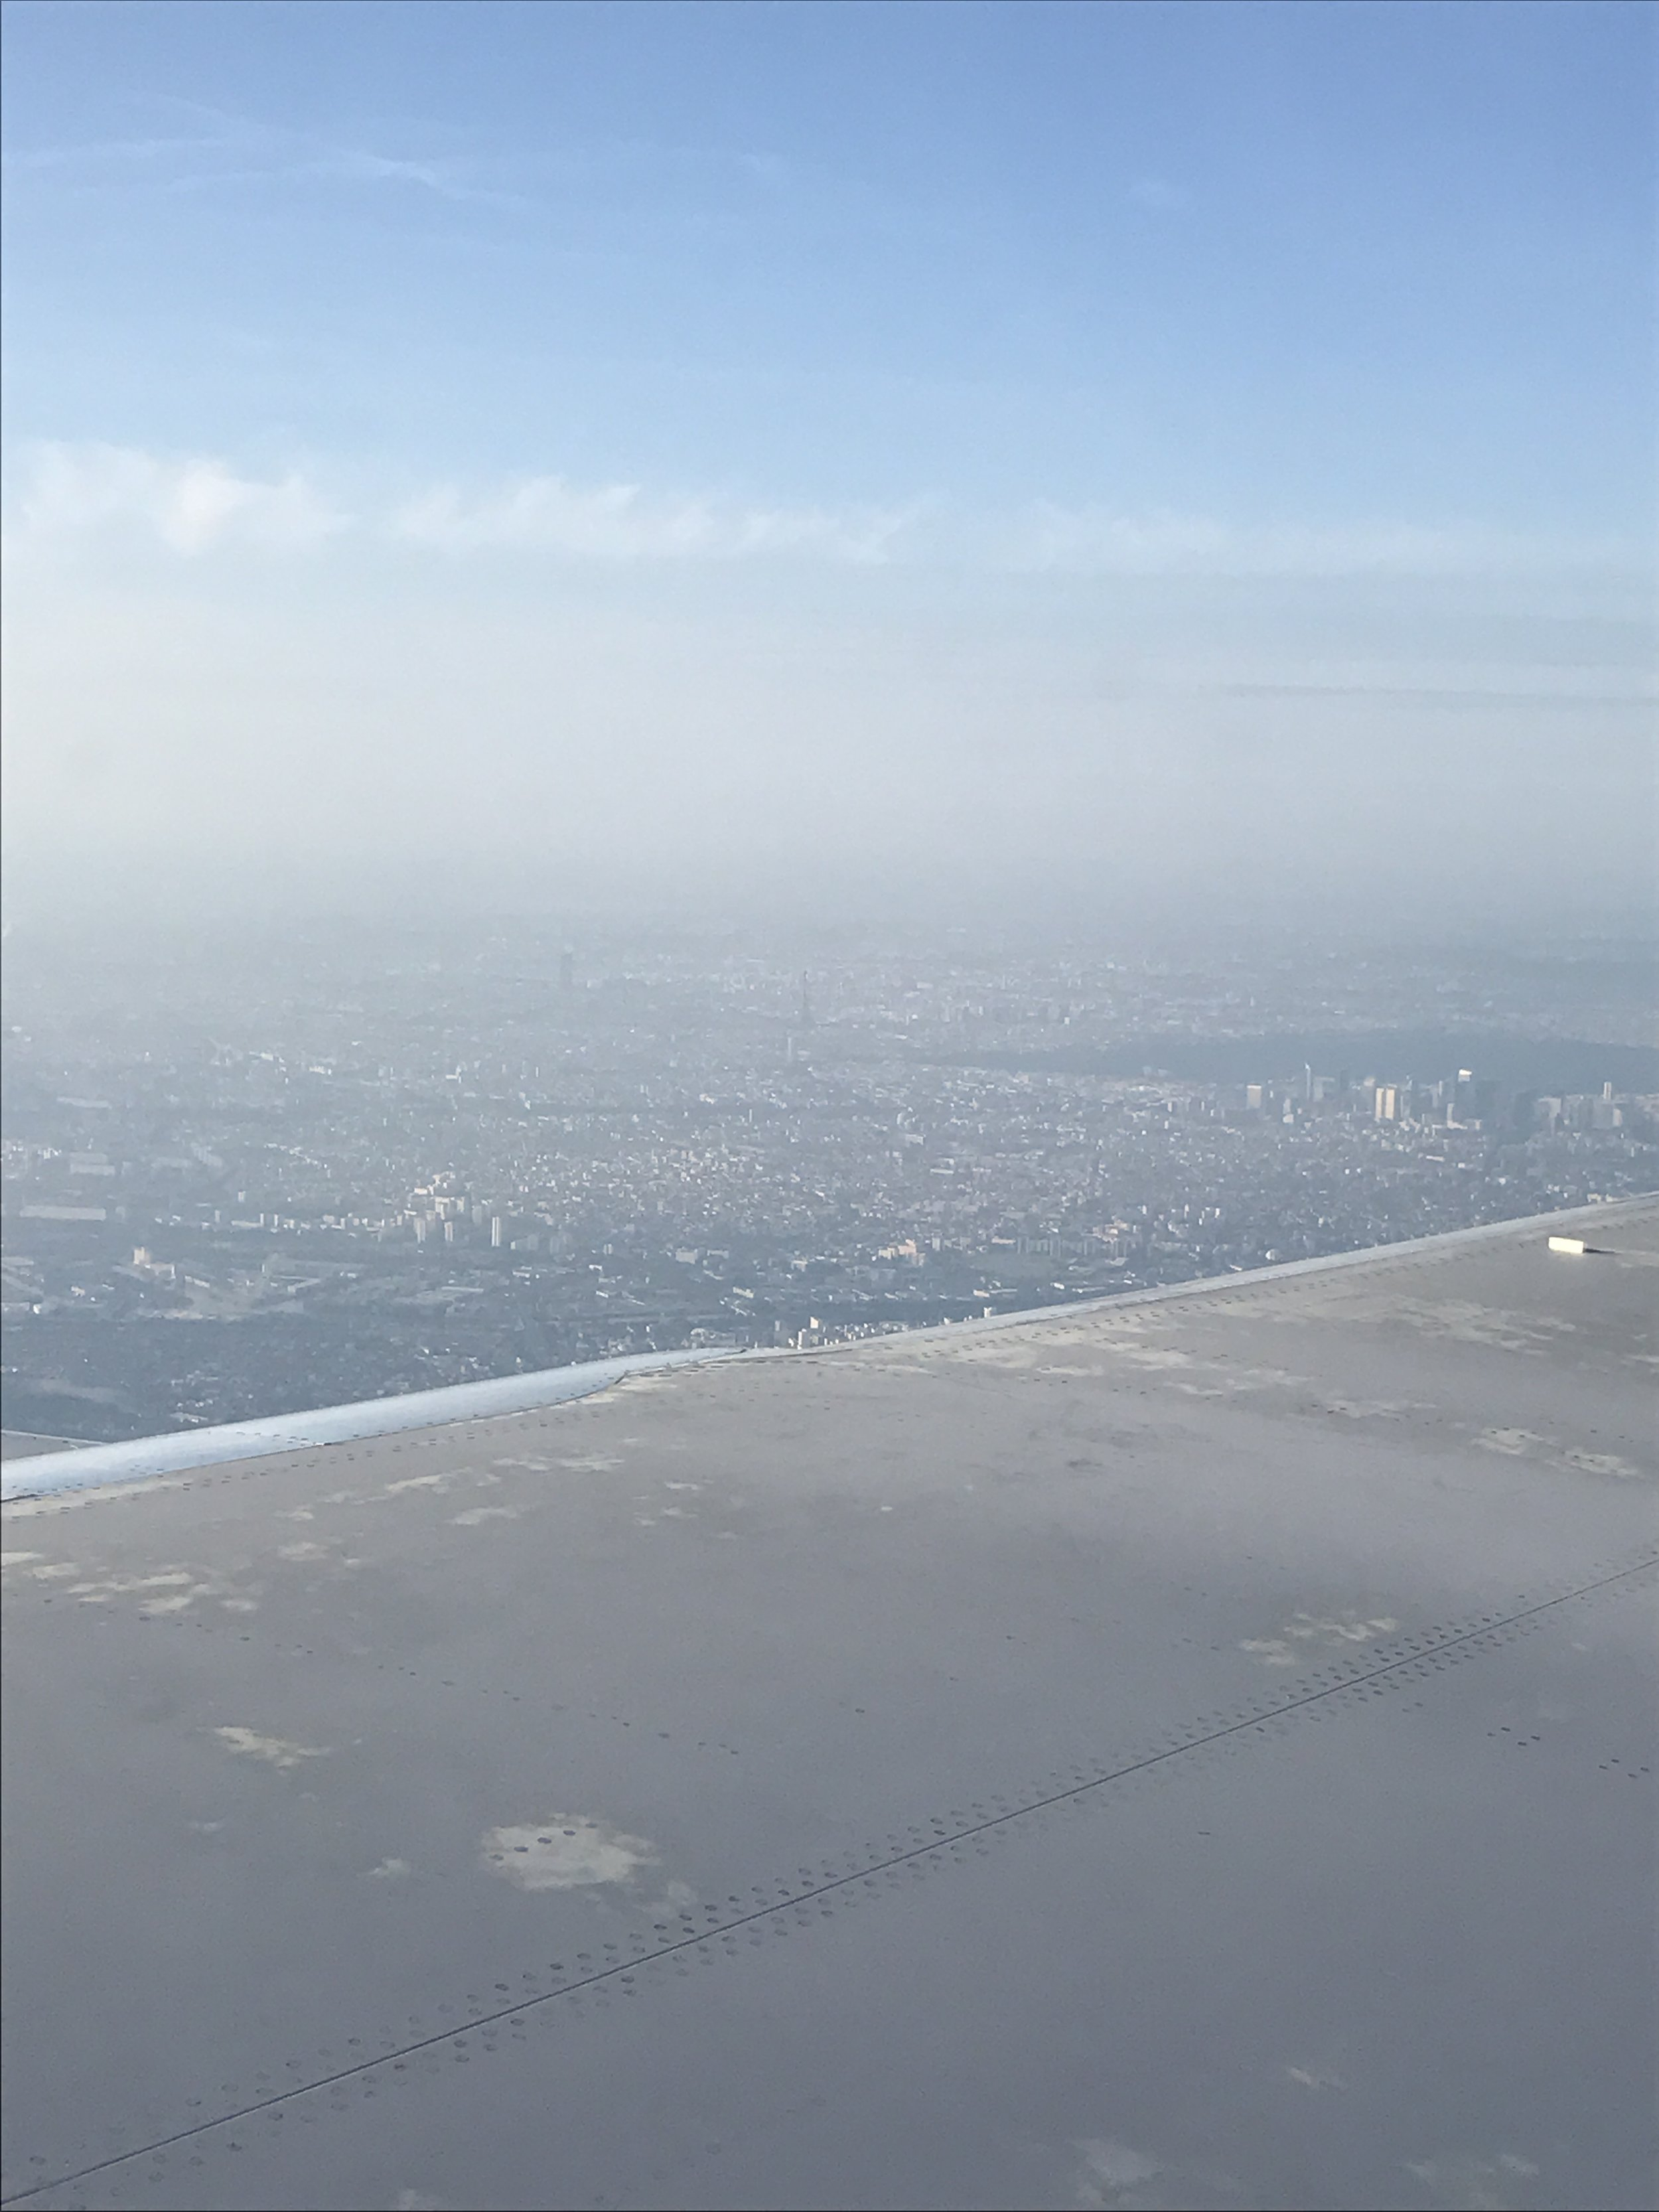 Look very closely and you can see the Eiffel Tower and Notre Dame!